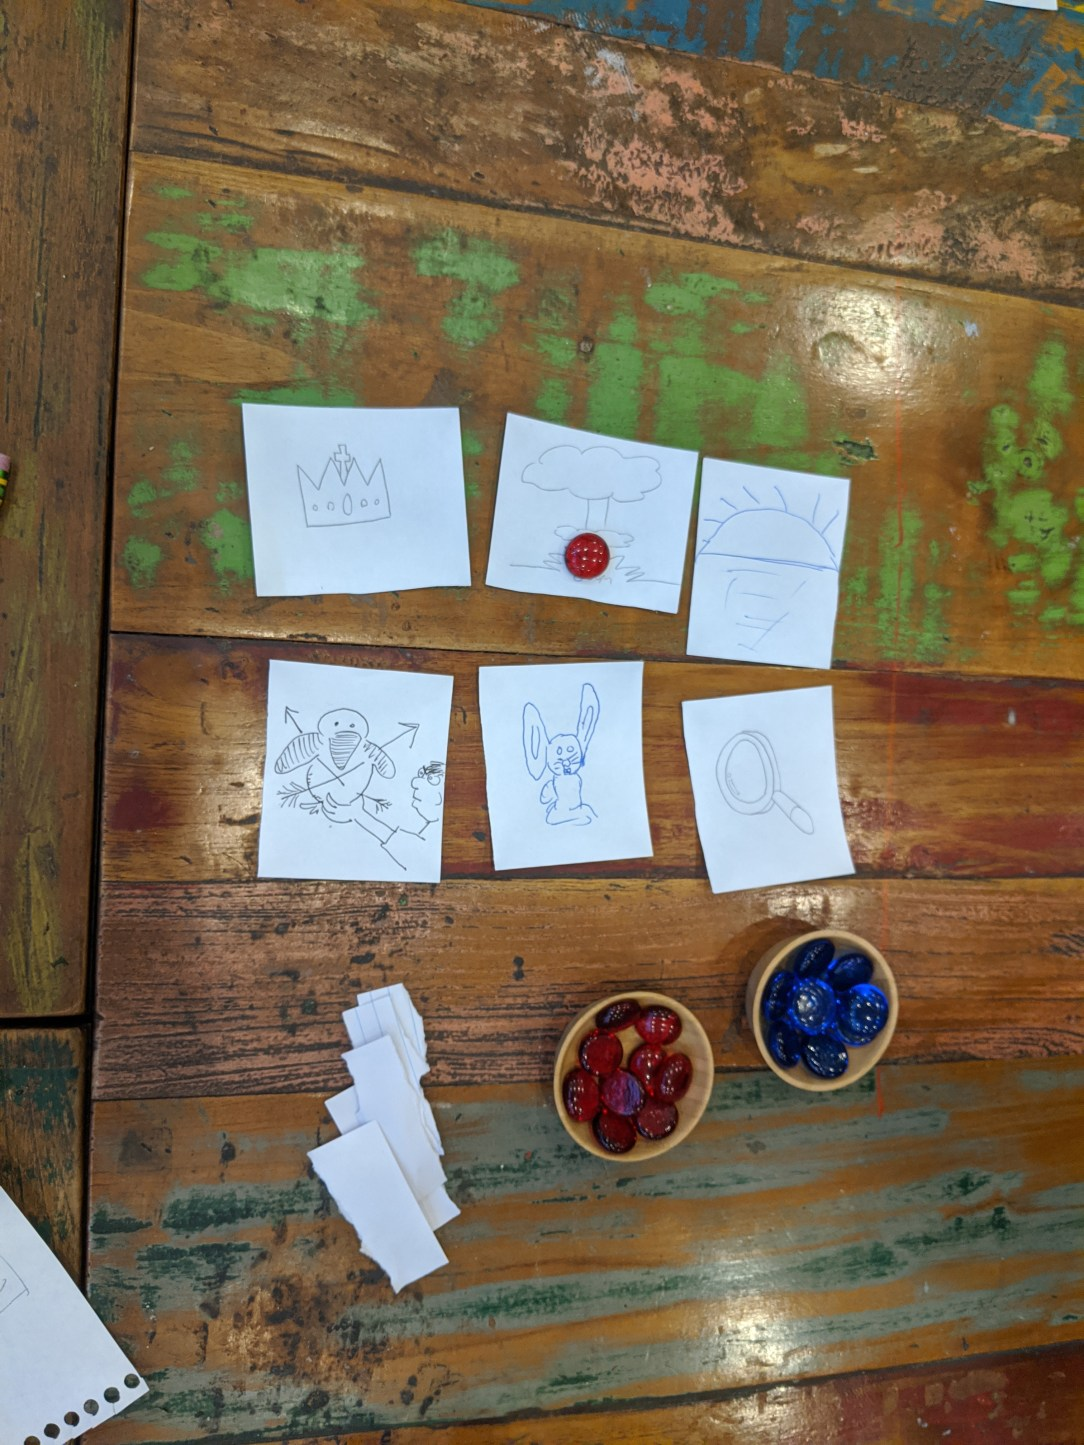 Players use these images as prompts for their story. Players place blue tokens on pieces of the story they liked and red on ones they didn't! Blue tokens are points to the person who corresponds to that image